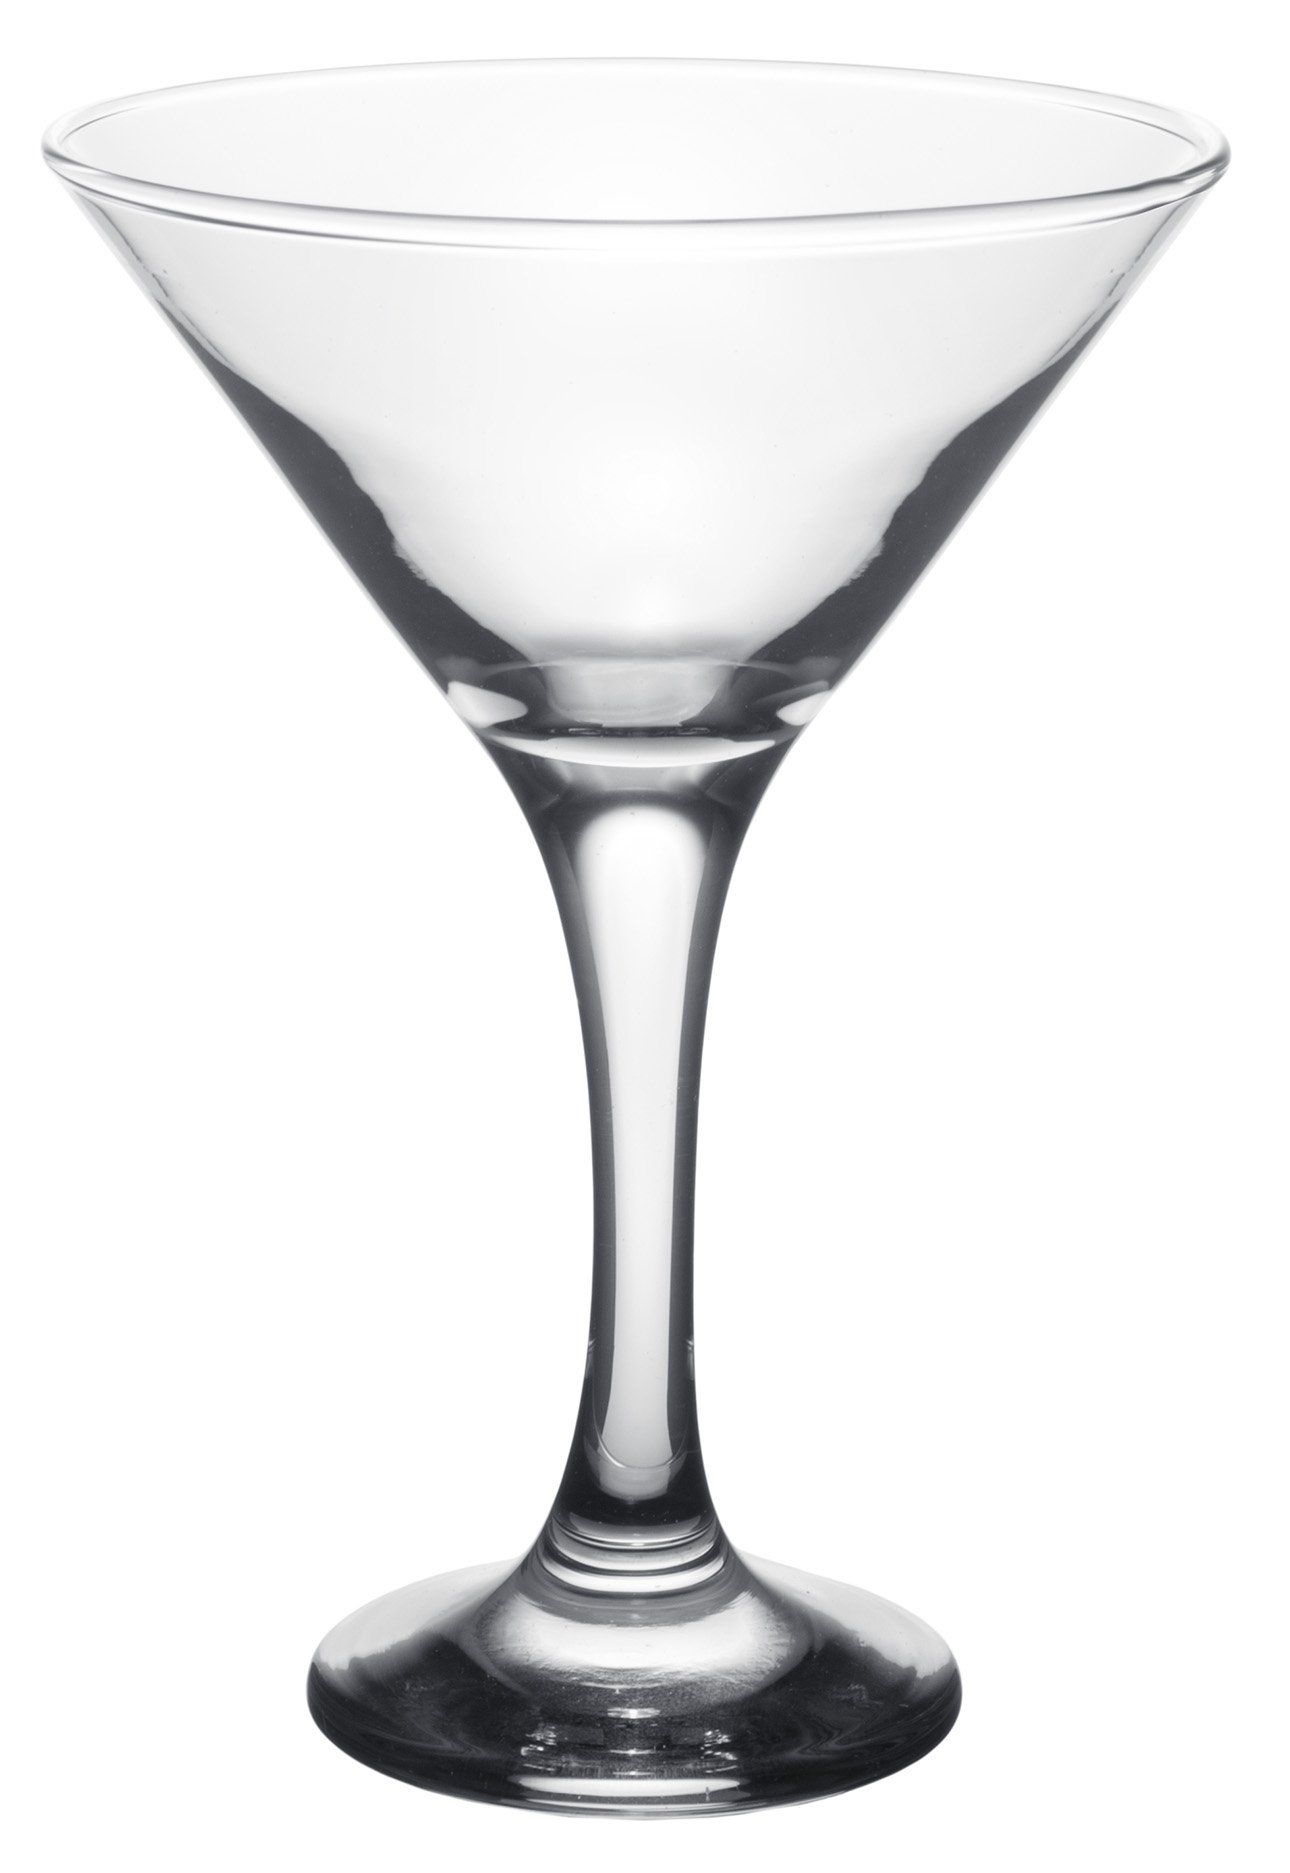 Clear Glass Barware, Classic Long Stemmed Martini Cocktail Glasses, Set of 6, 6 oz